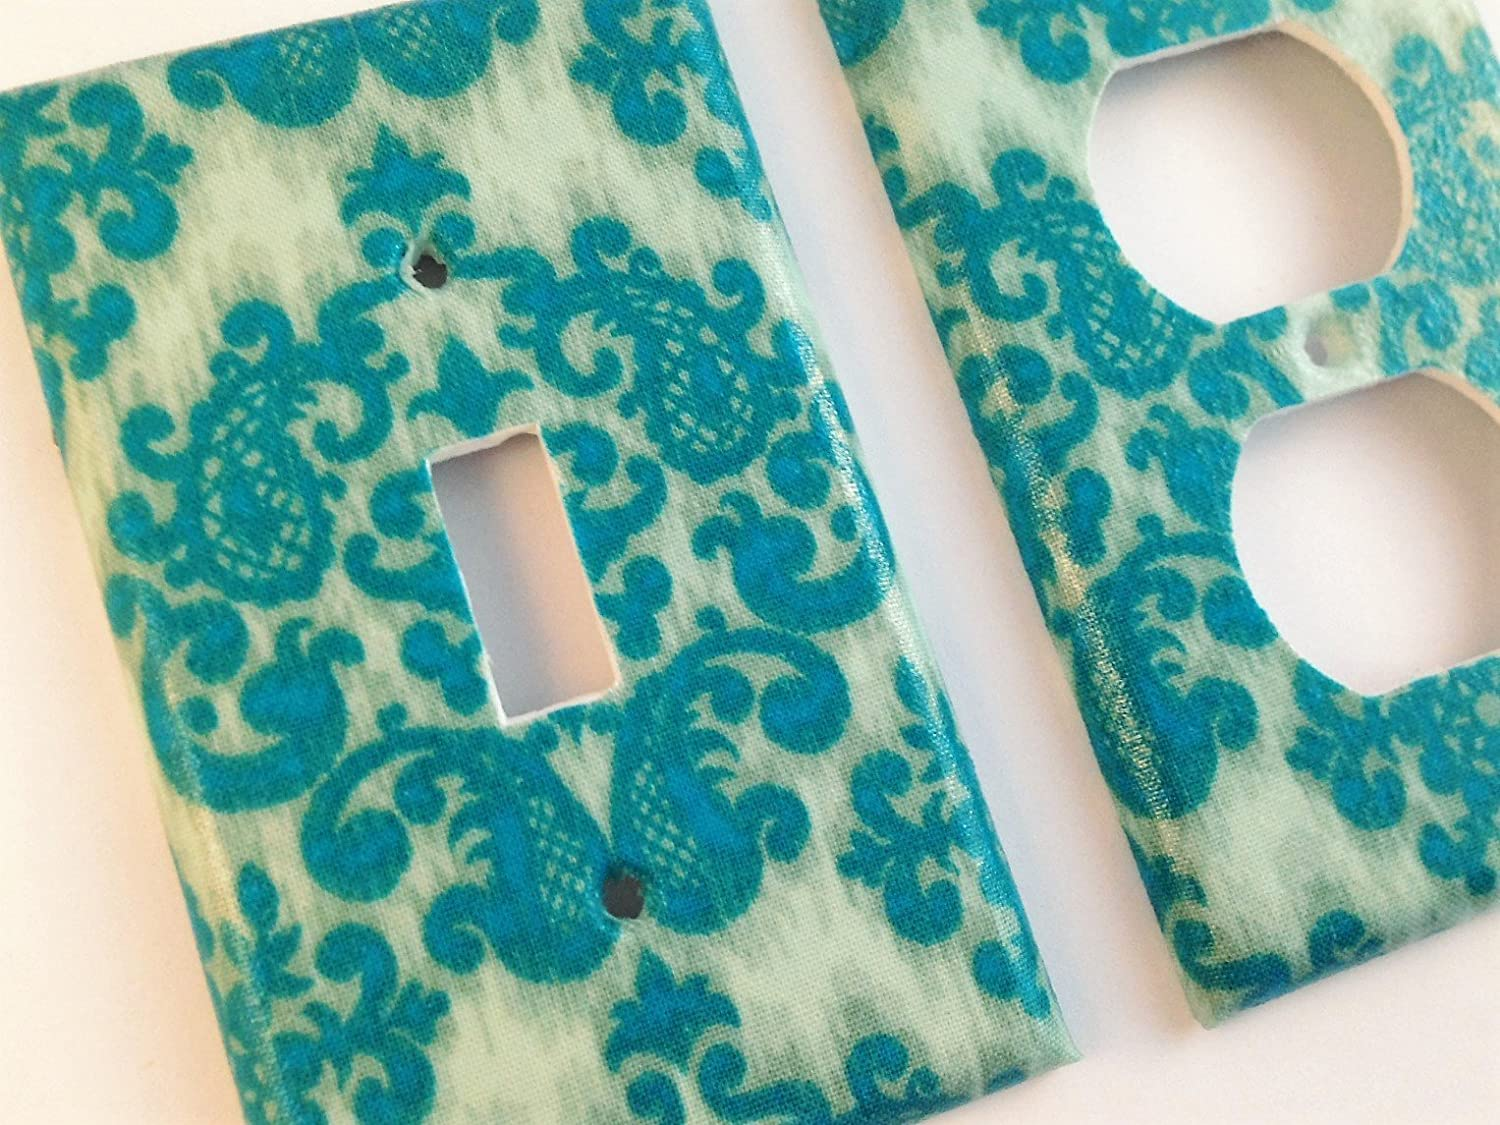 Teal Damask Light Switch Cover - Various Size Switchplates Offered